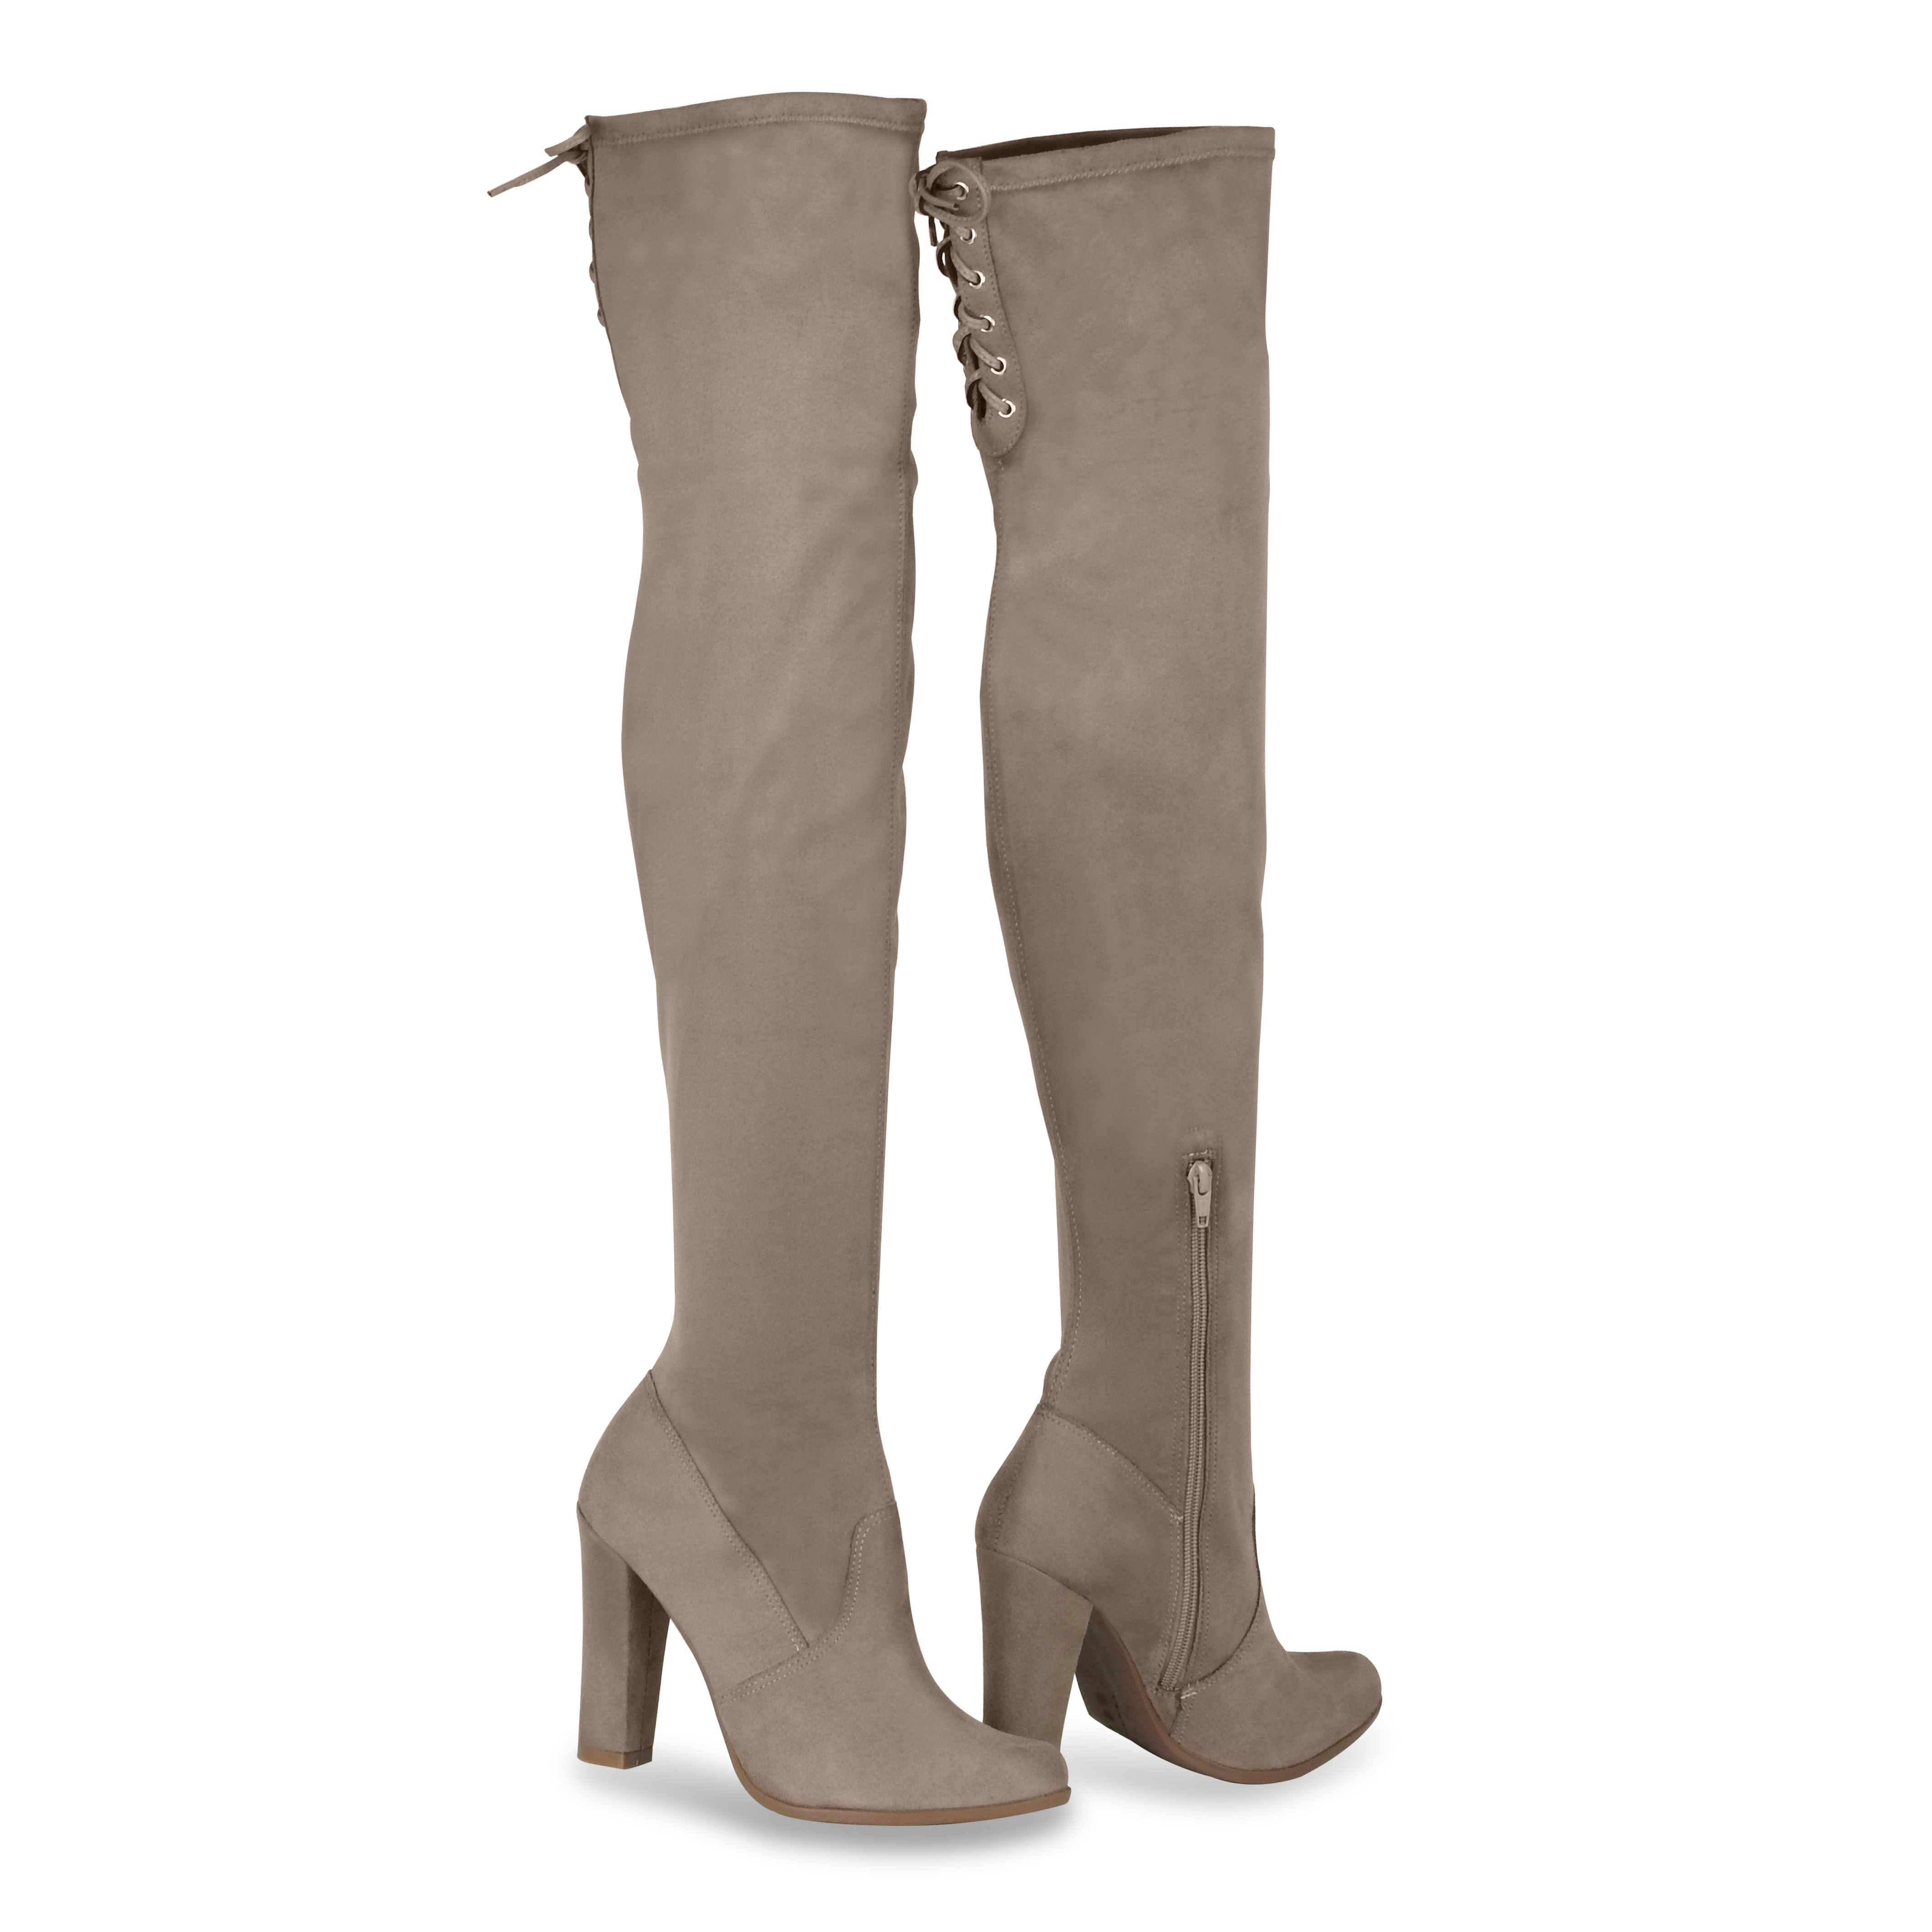 a337240caff53 boots - botas - bota over the knee - winter - Inverno 2016 - Ref. 16 ...